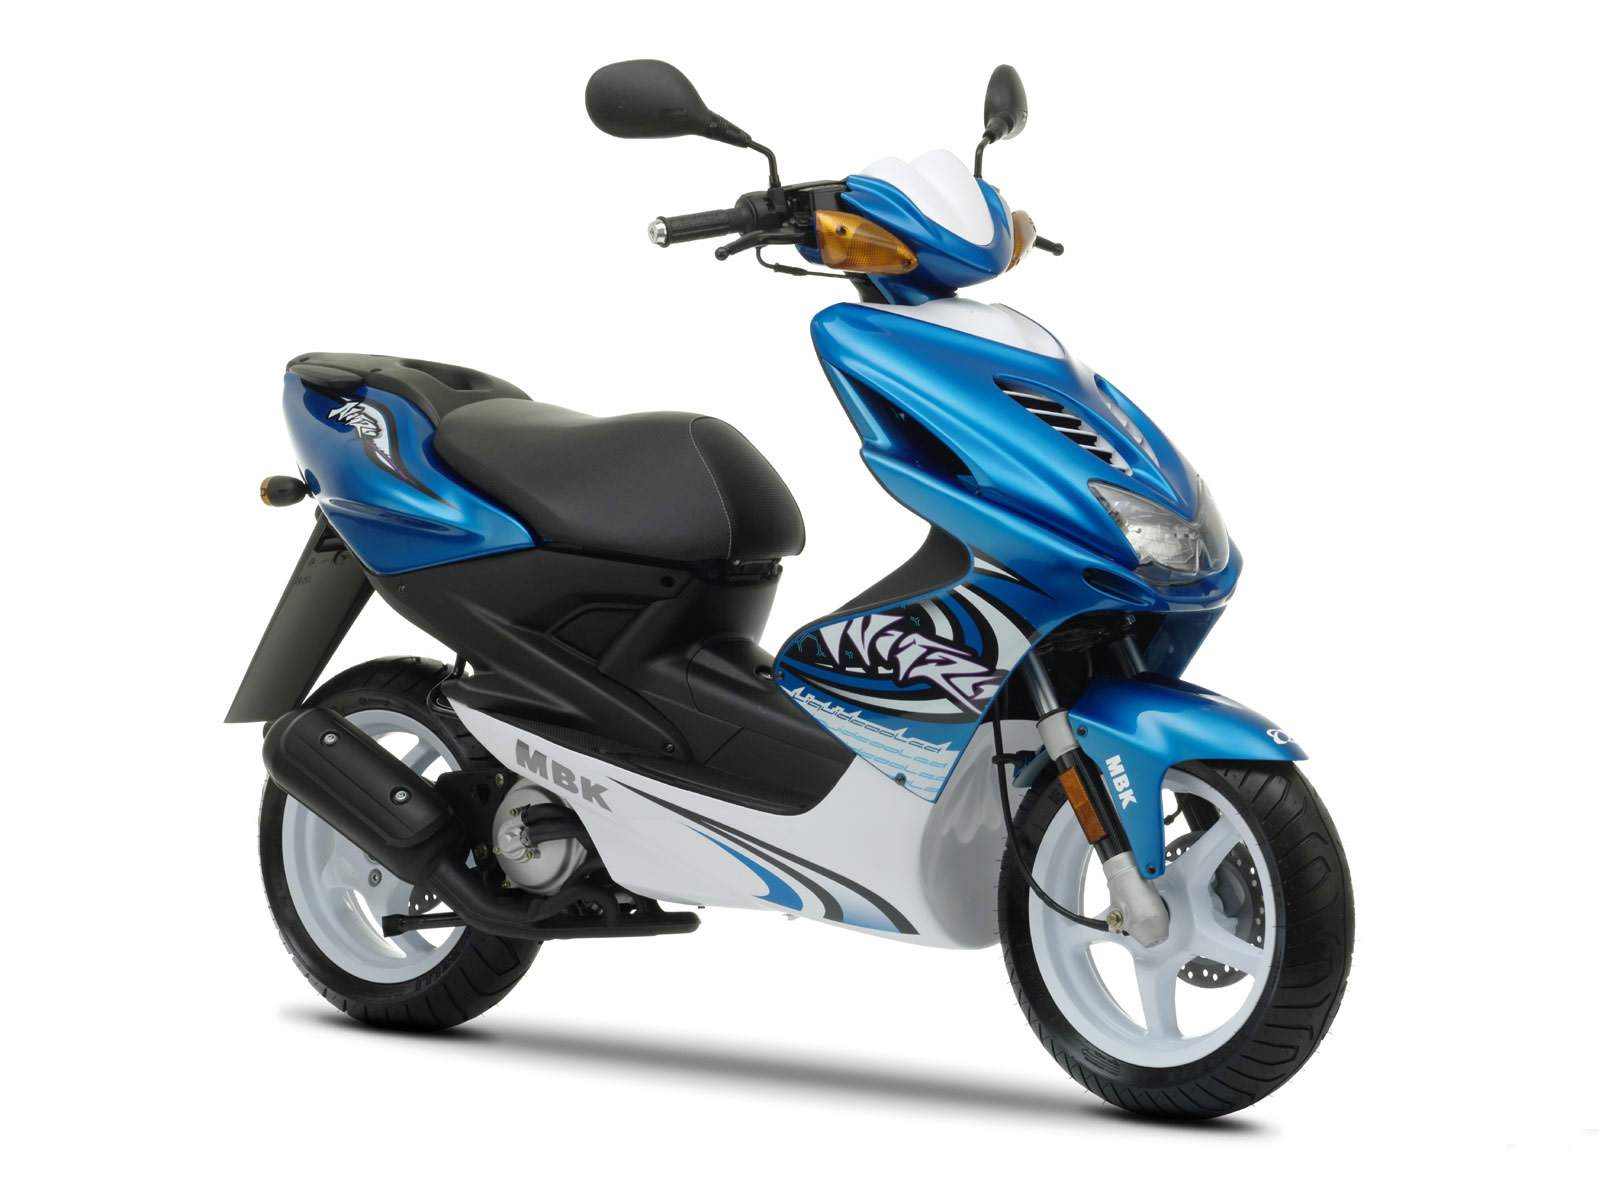 2009 mbk nitro scooter picture specifications insurance information